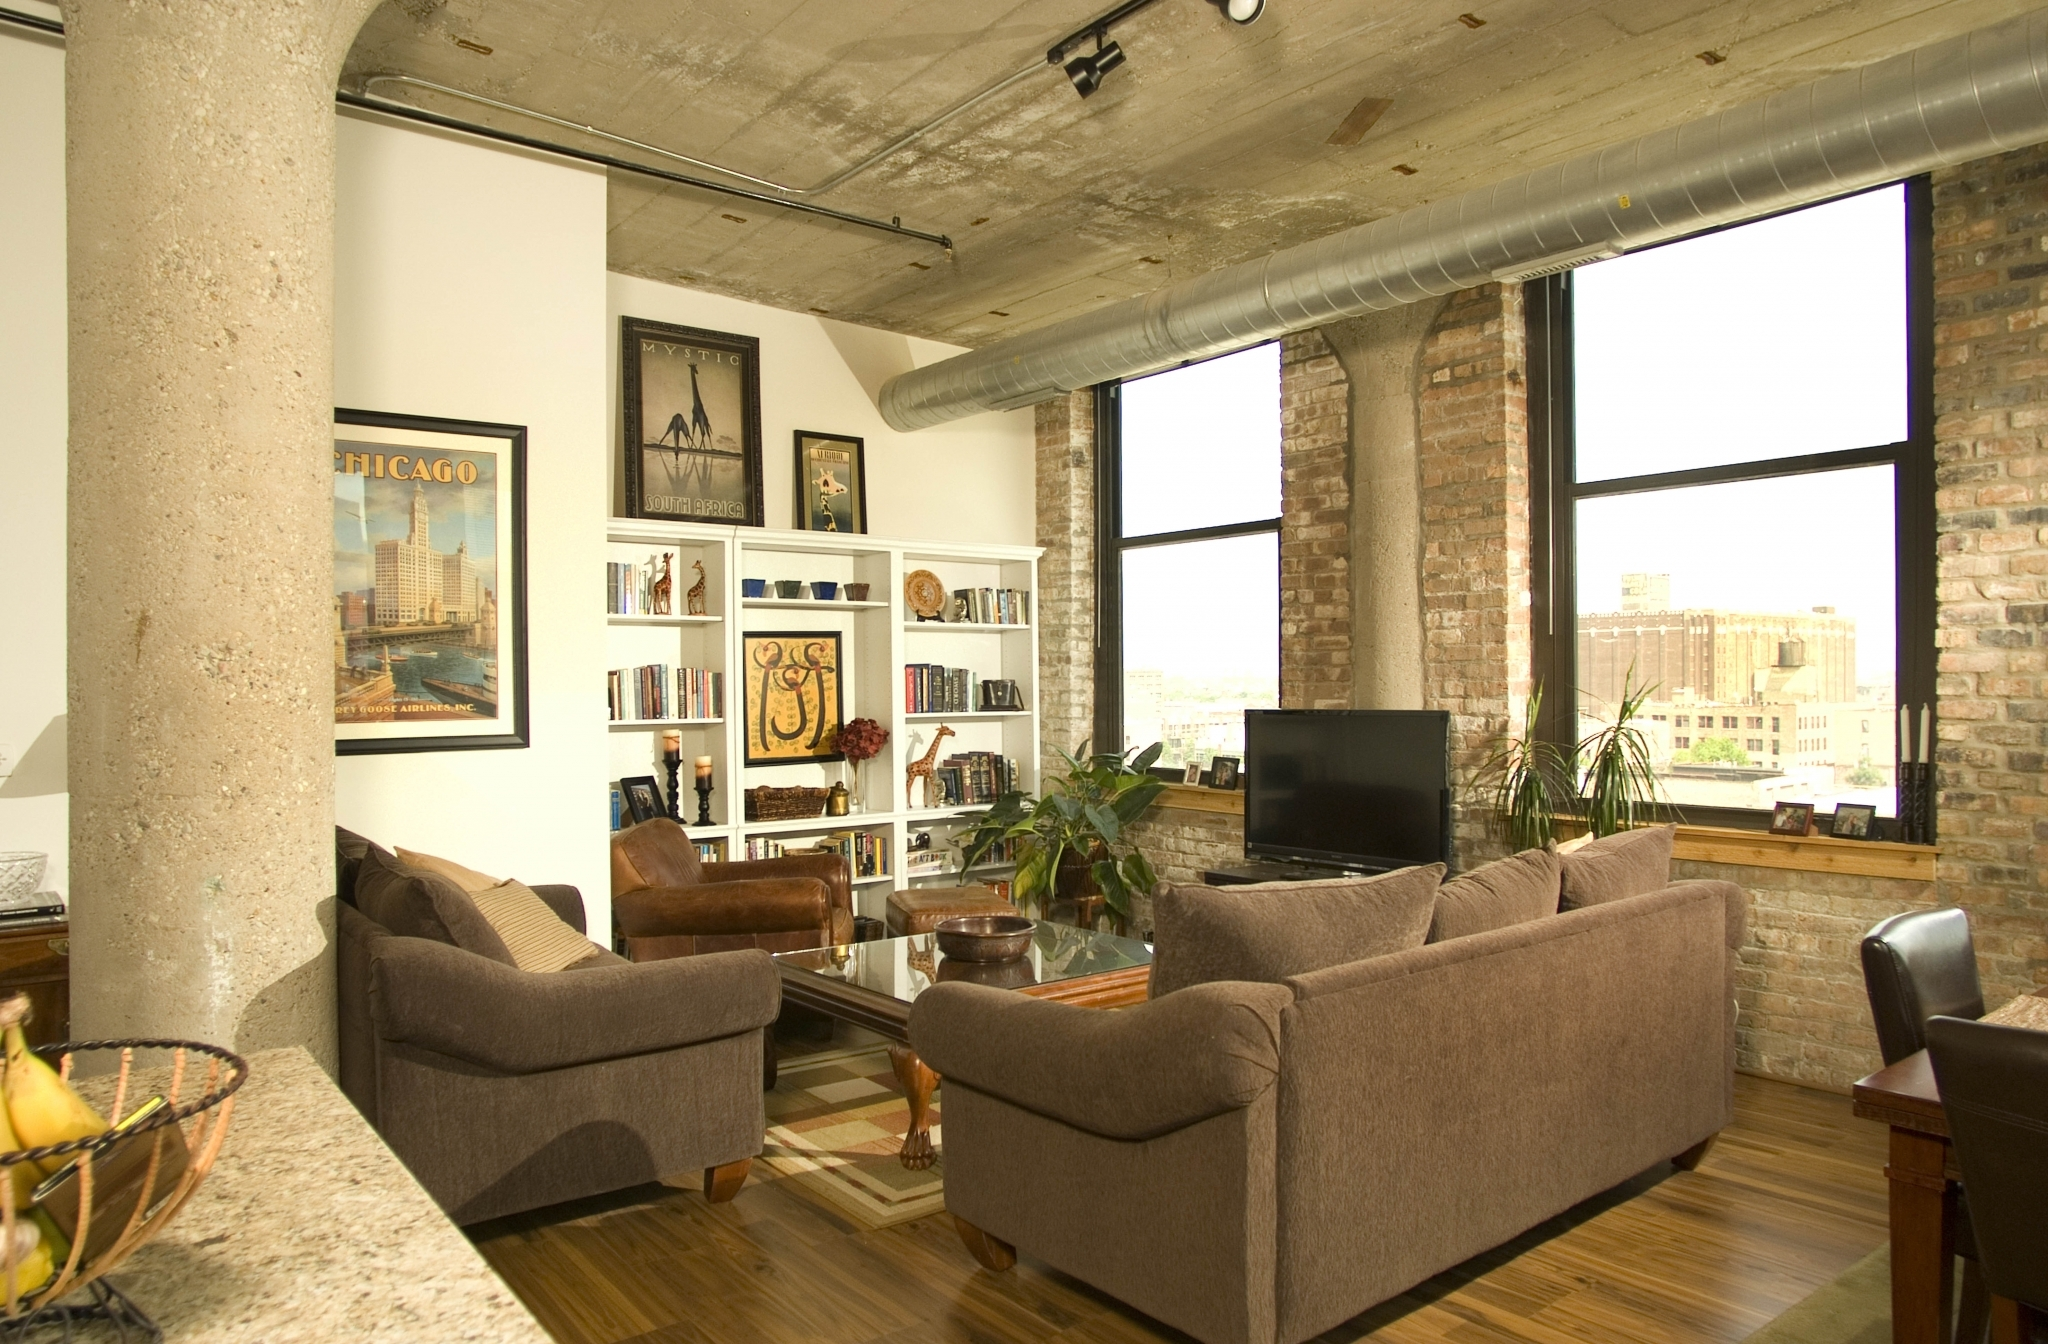 Stupendous Renovated Lofts And New Apartments In The Hot West Loop Home Interior And Landscaping Ologienasavecom